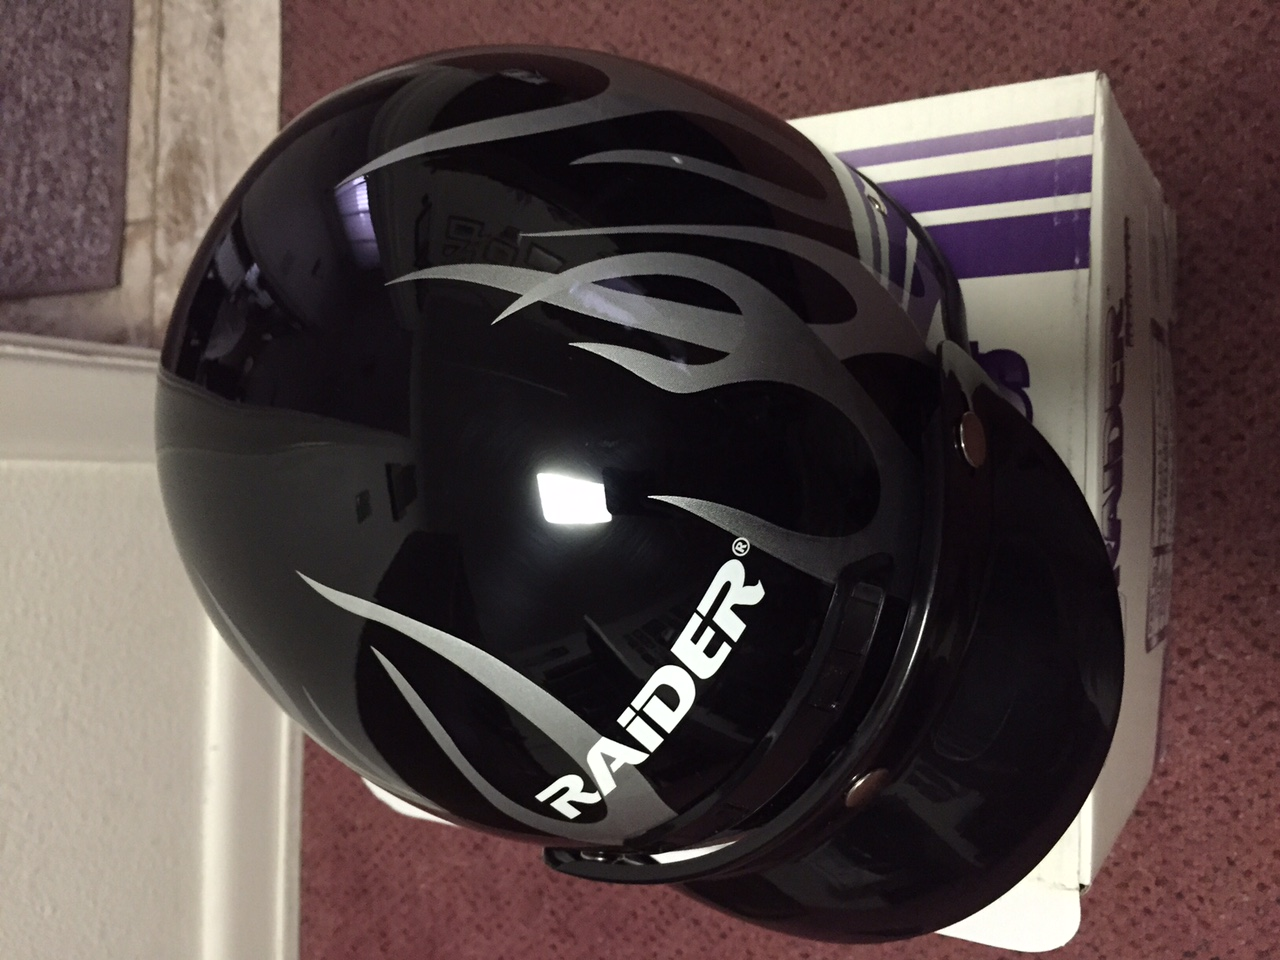 Raider Motorcycle Helmets: Full in Size M & Half in Size XL